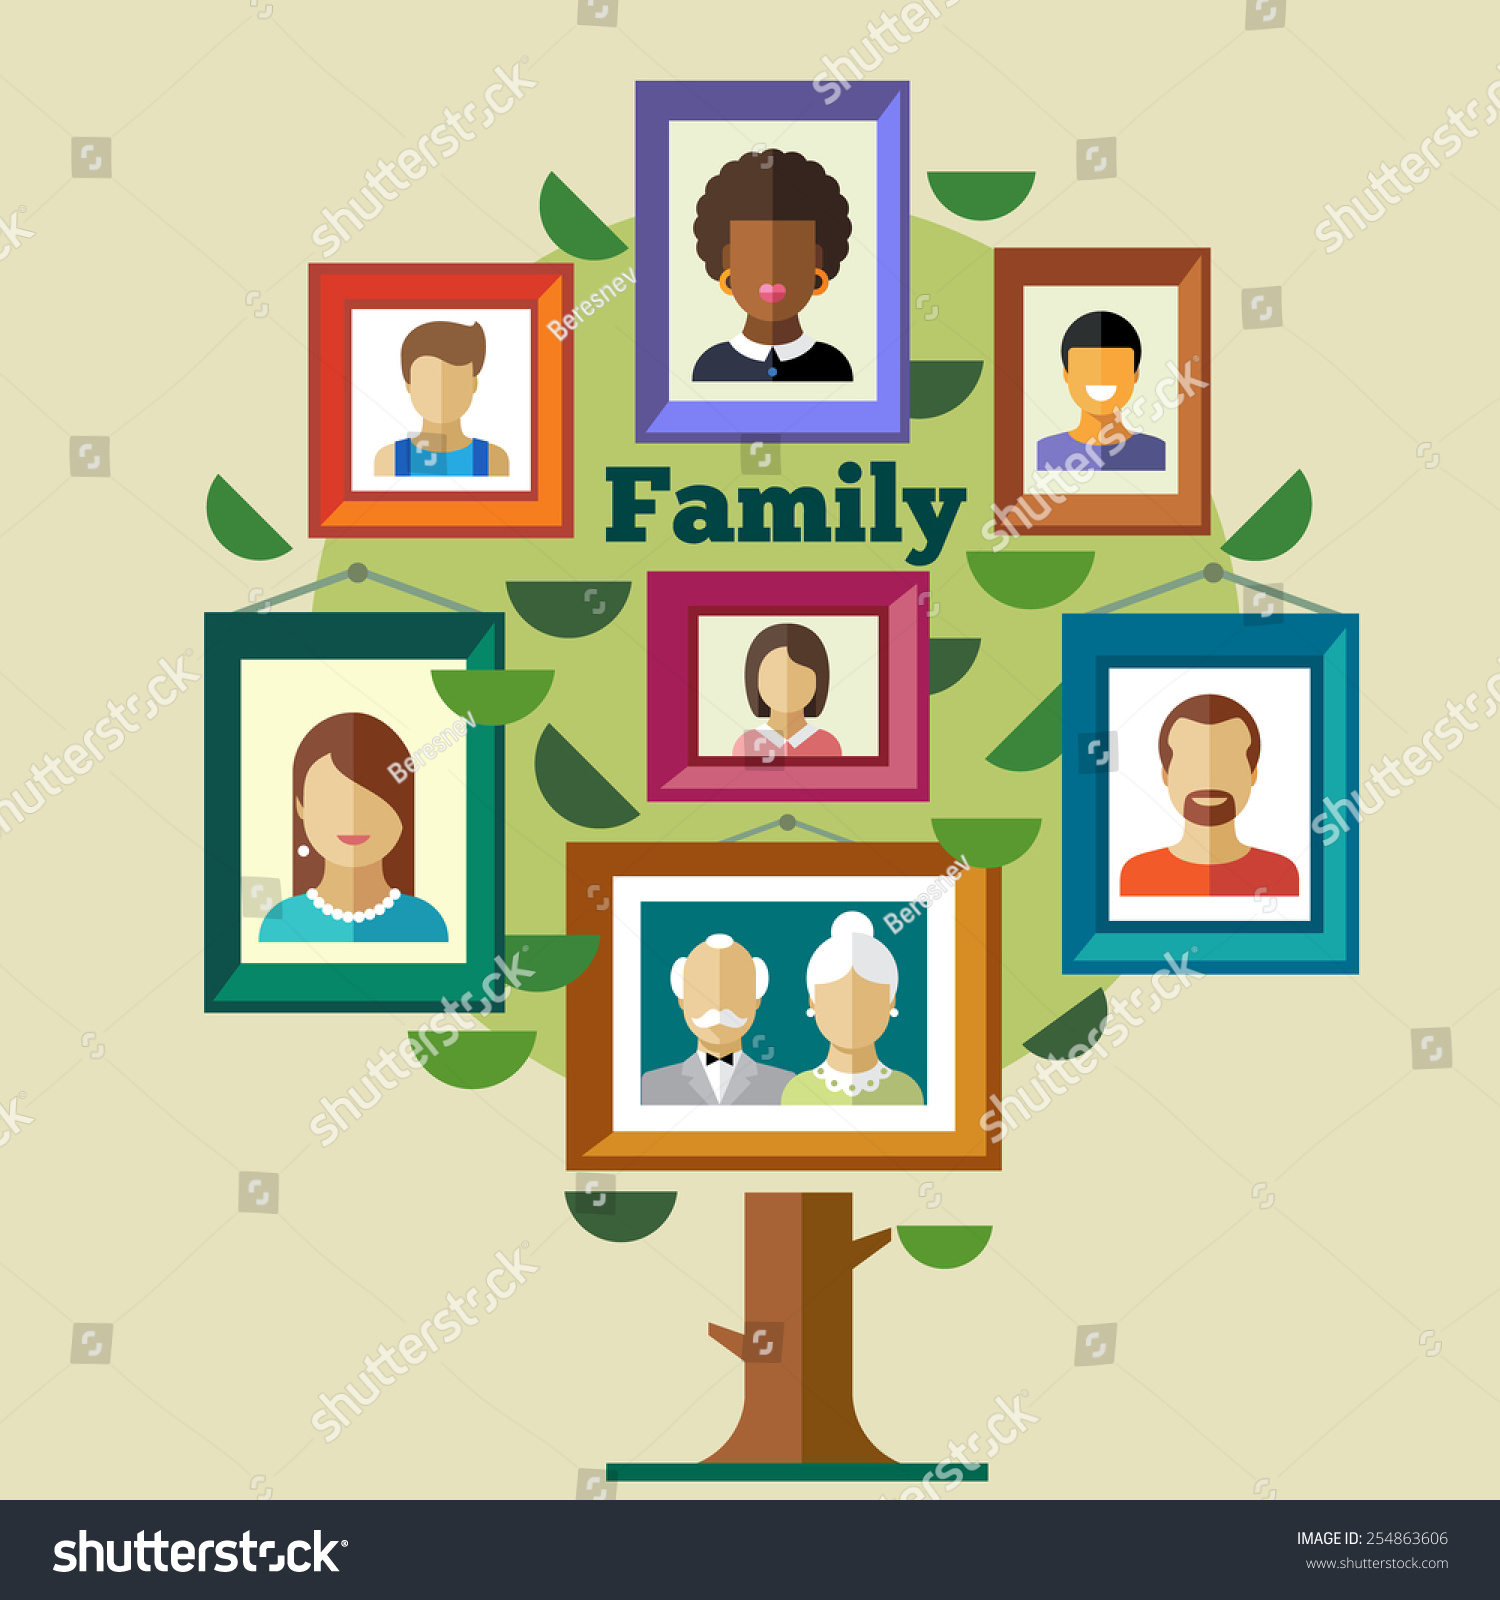 Family tree relationships traditions portraits peoples stock family tree relationships and traditions portraits of peoples in frames mother father jeuxipadfo Gallery